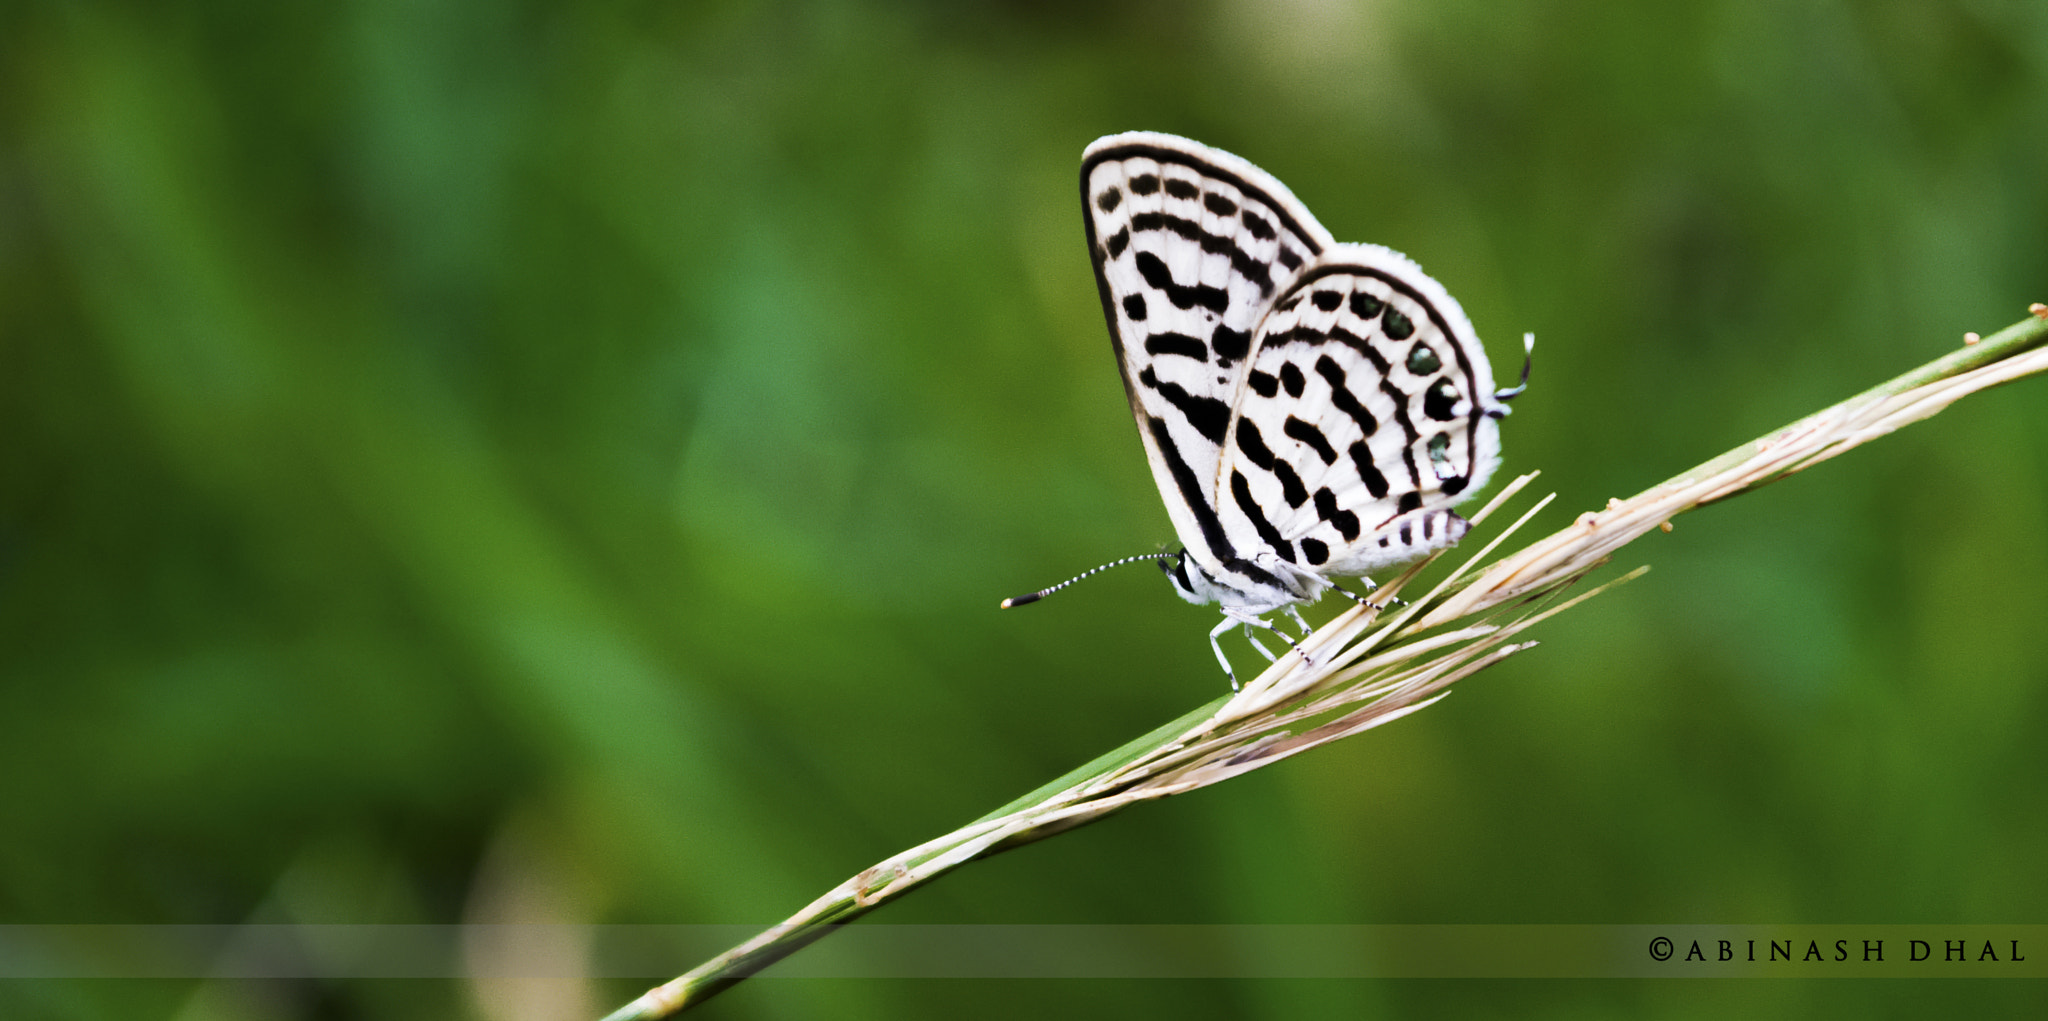 Photograph Small Steps by Abinash Dhal on 500px